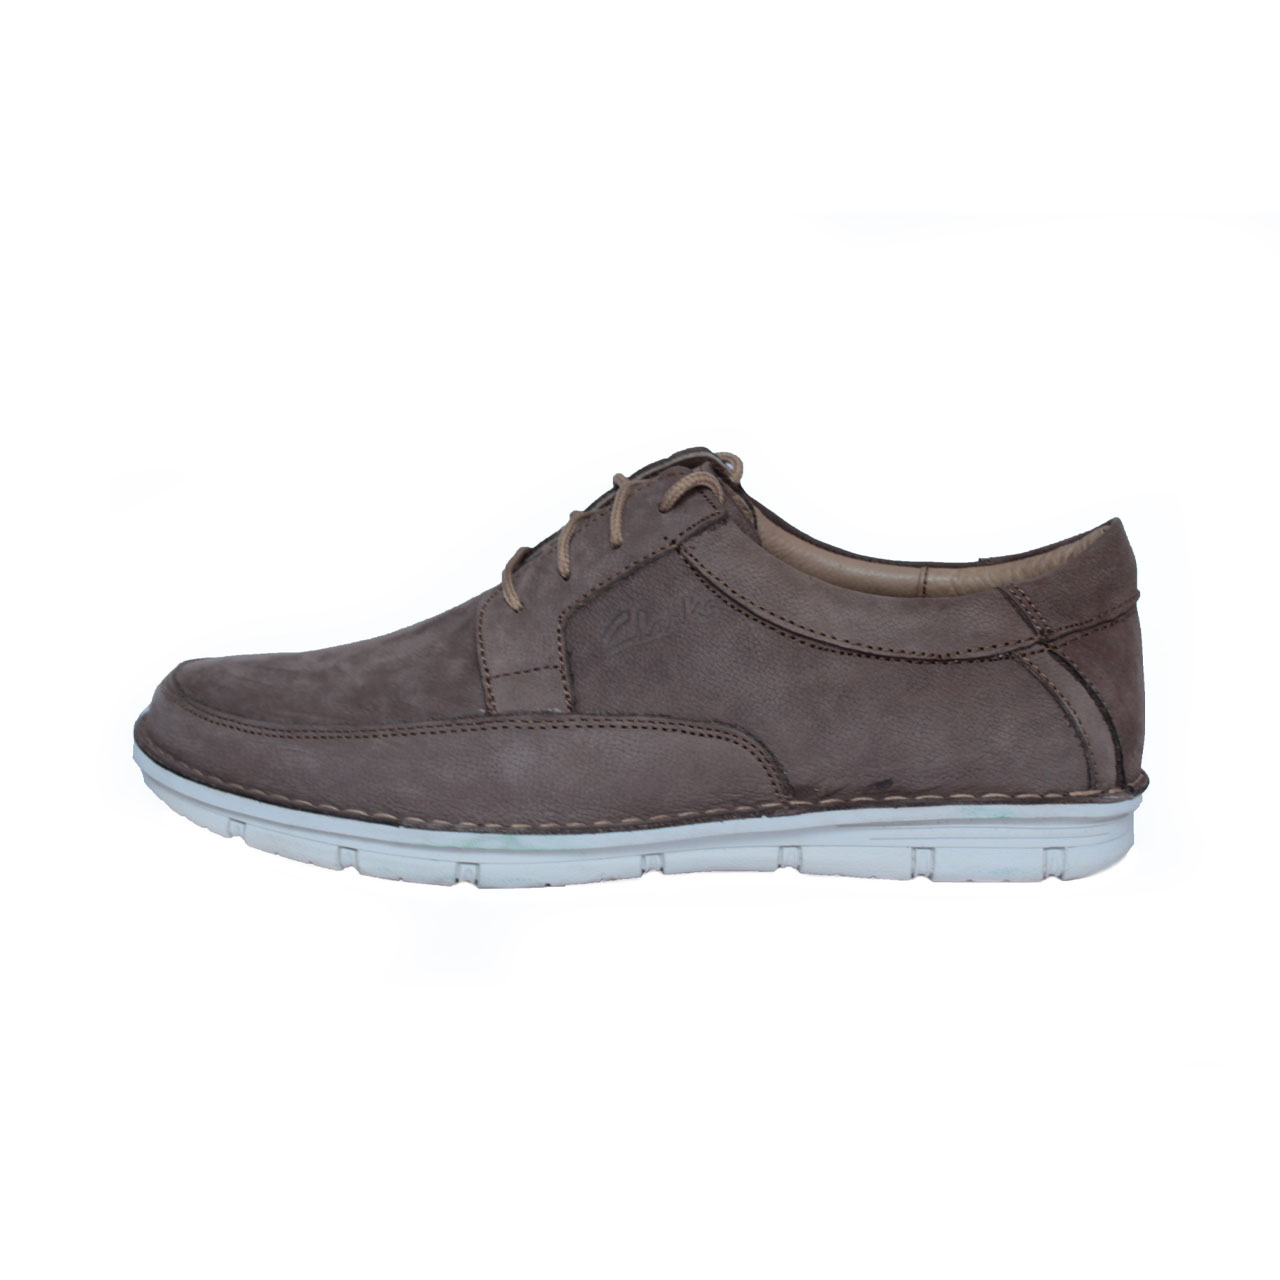 SAINACHARM leather men's casual shoes, M108 dusty  Model